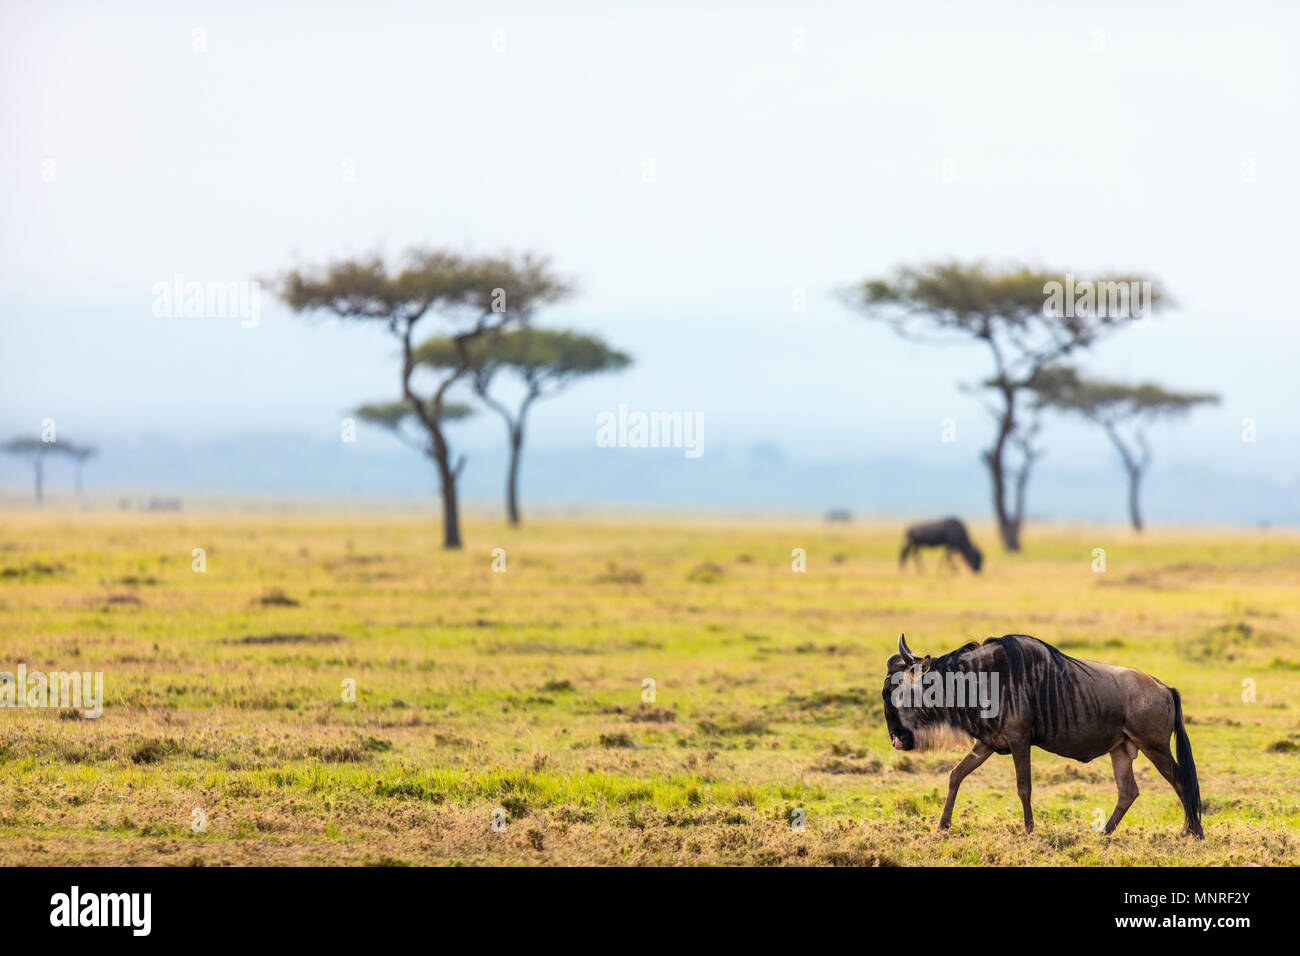 Wildebeests nel Masai Mara National Park in Kenya Immagini Stock